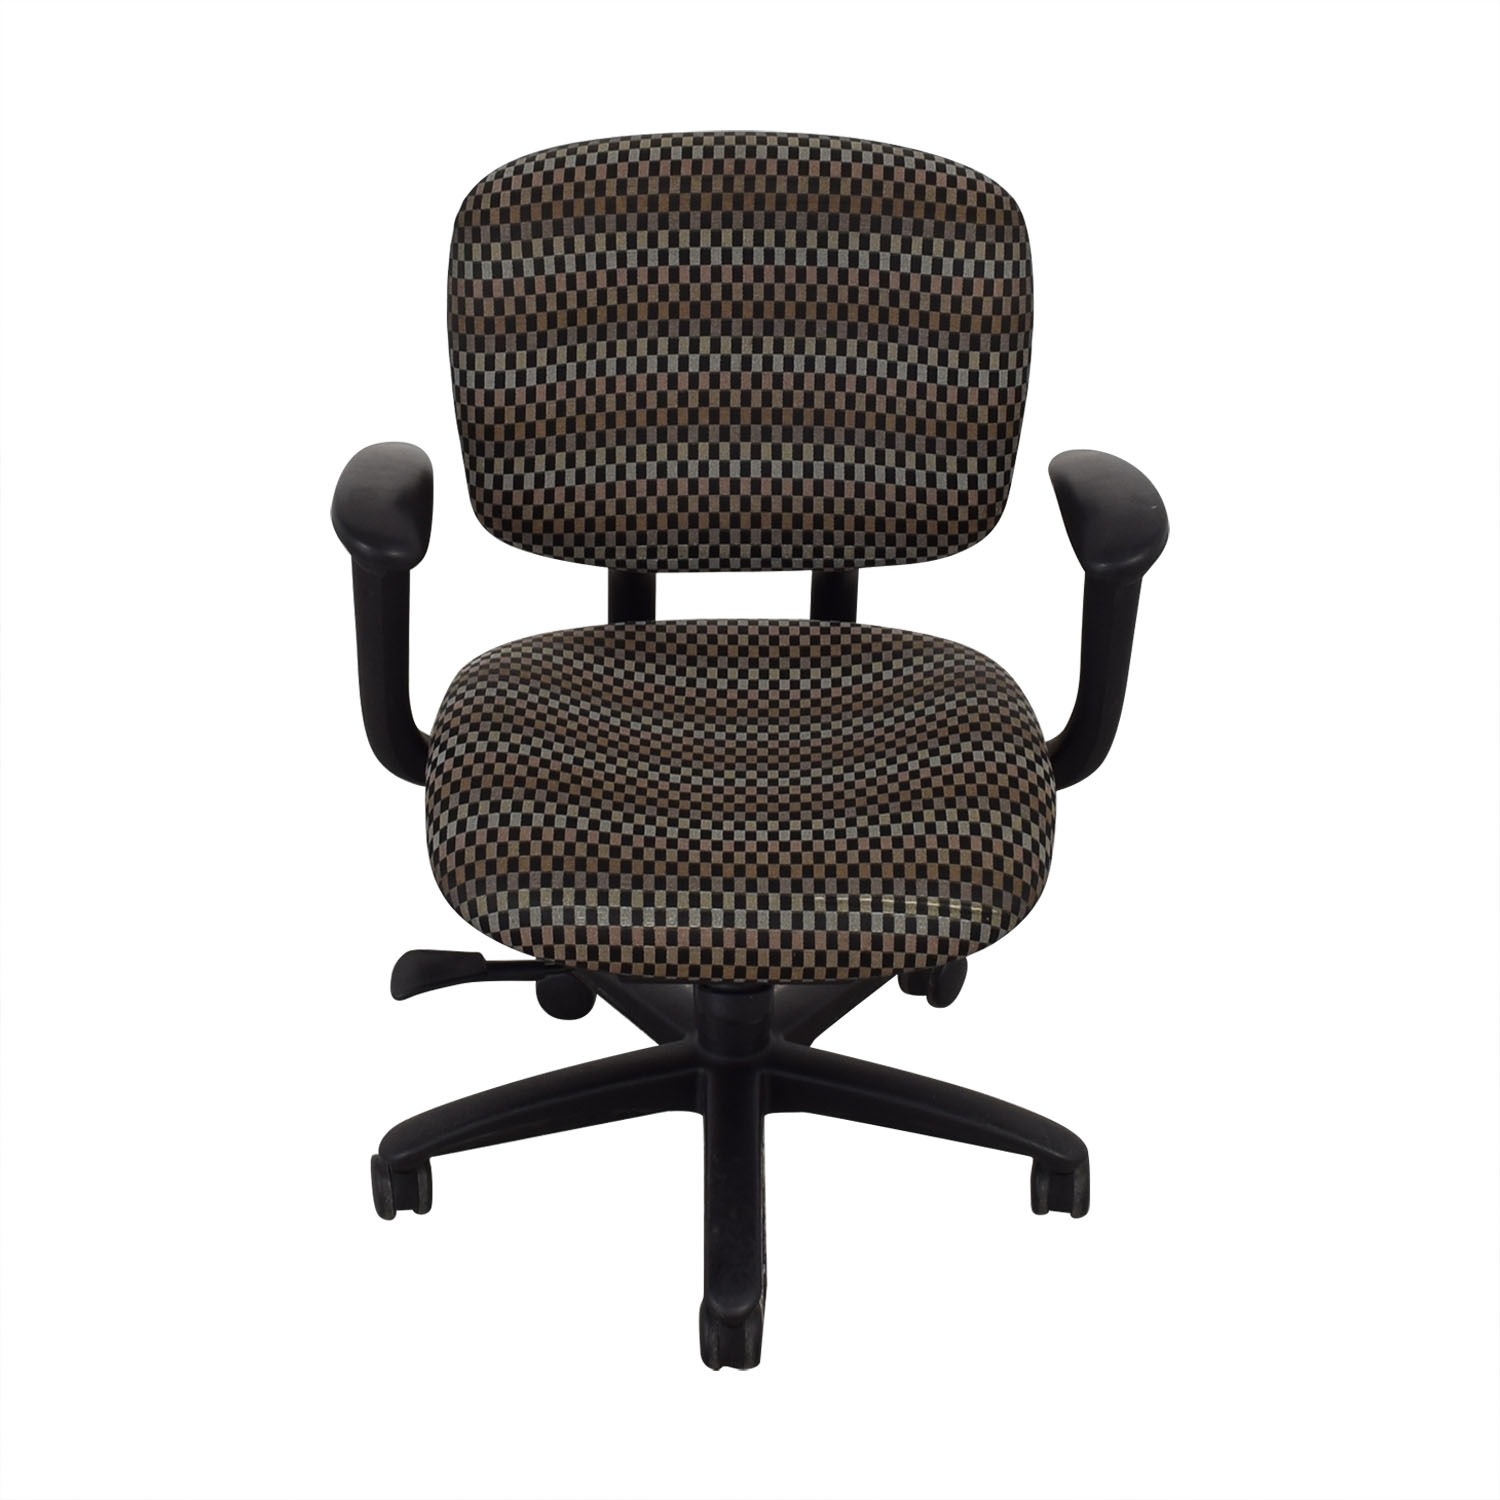 Haworth Haworth Improv Office Desk Chairs for sale